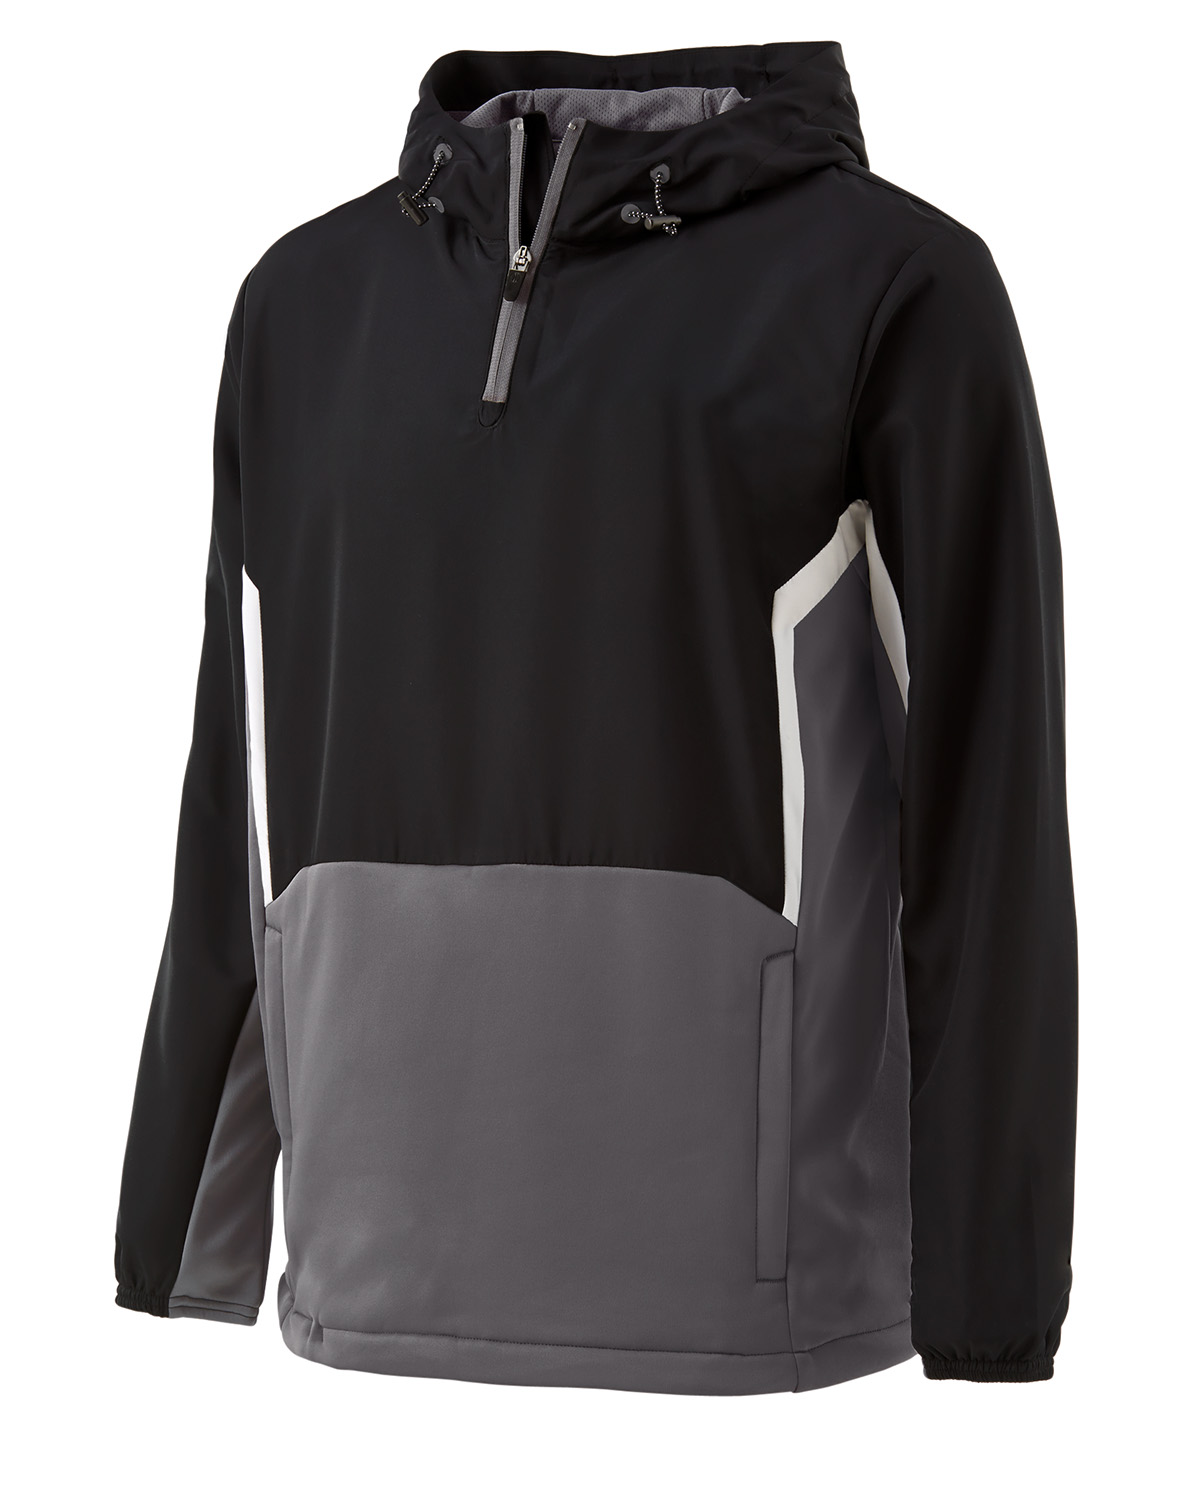 Holloway 229005 - Adult Polyester Quarter Zip Potential Pullover